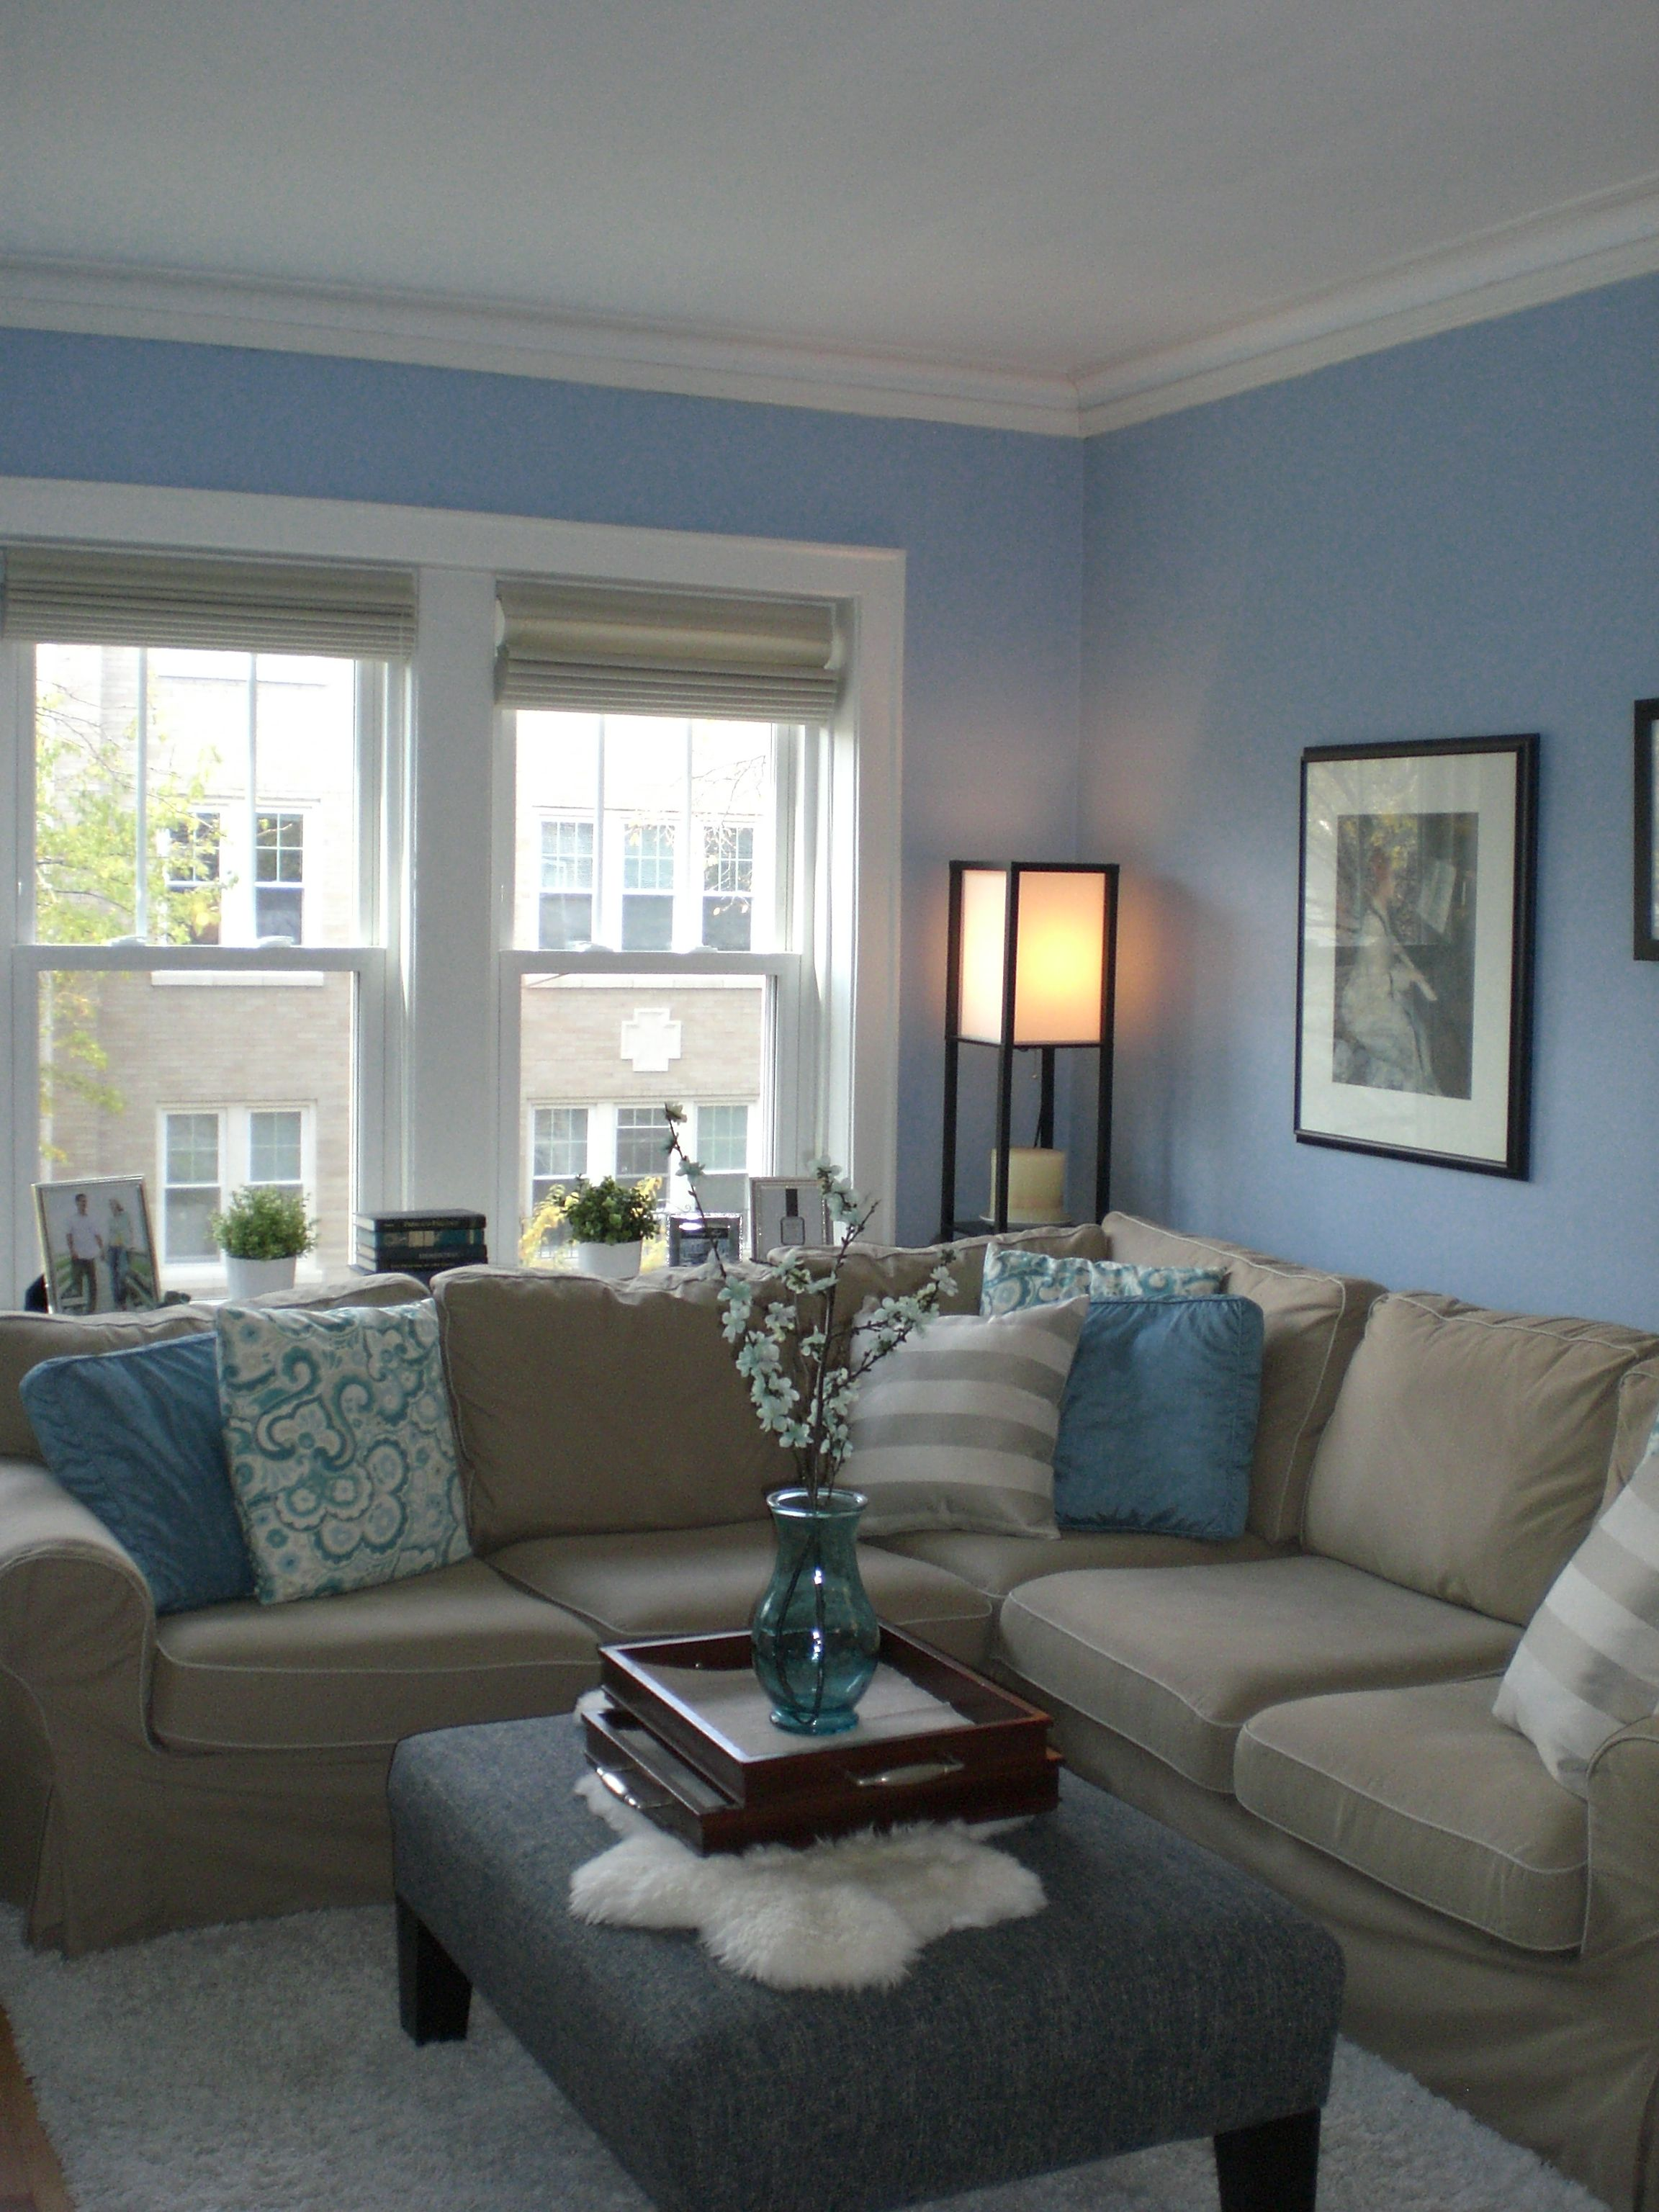 Living Room The2bedroomblues Light Blue Living Room Blue Living Room Decor Blue Walls Living Room